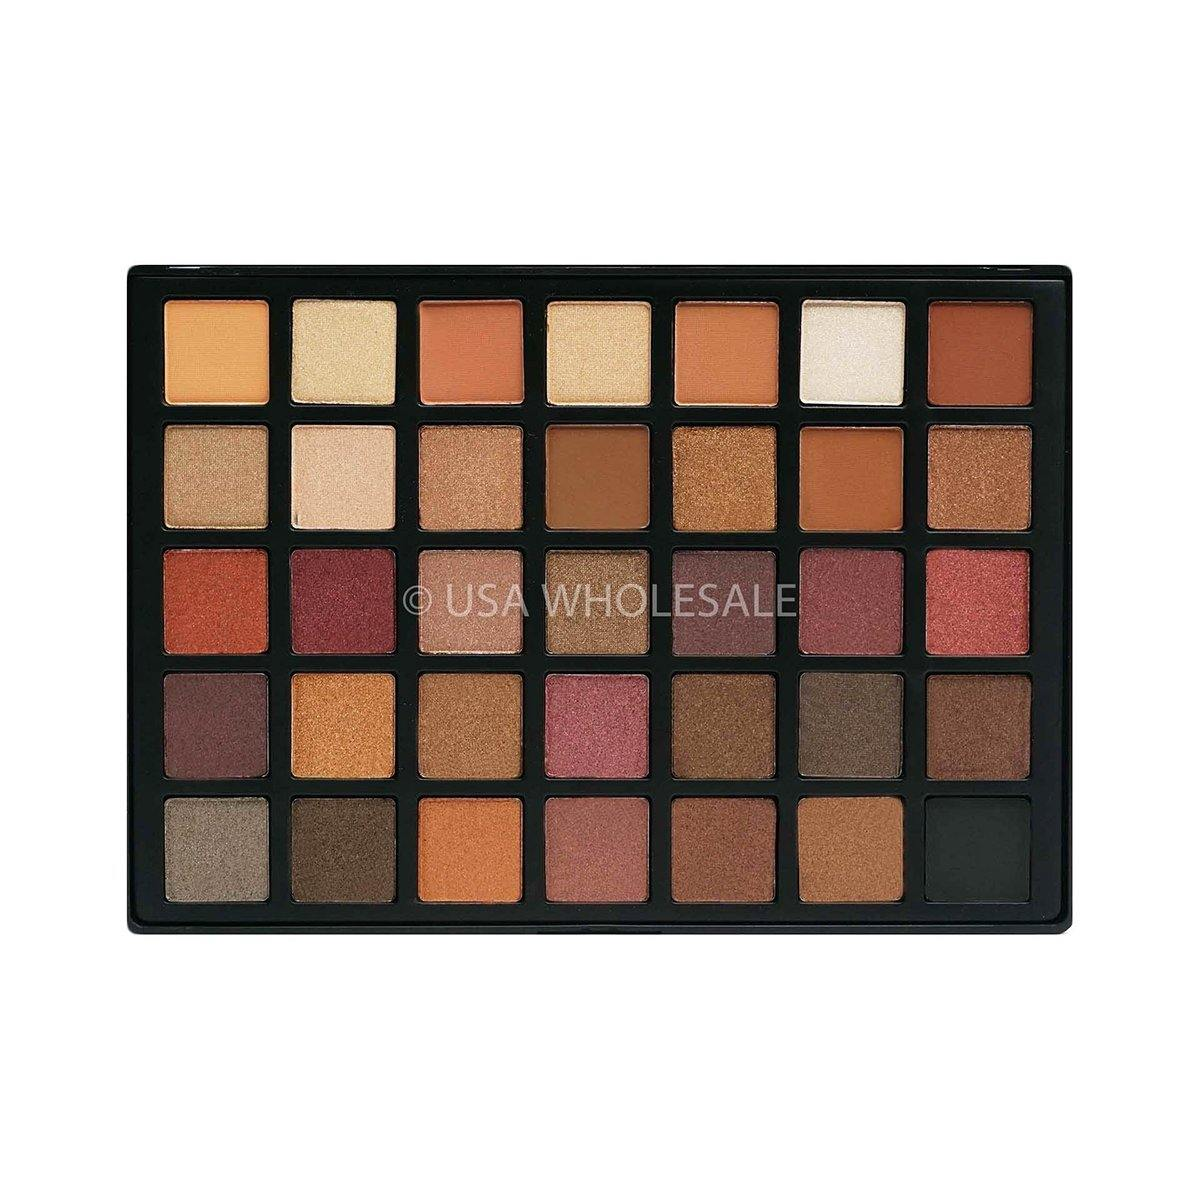 BEAUTY CREATIONS | Fairy Tale Collection - Anastasia 35 Color Pro Palette (Case of 6)